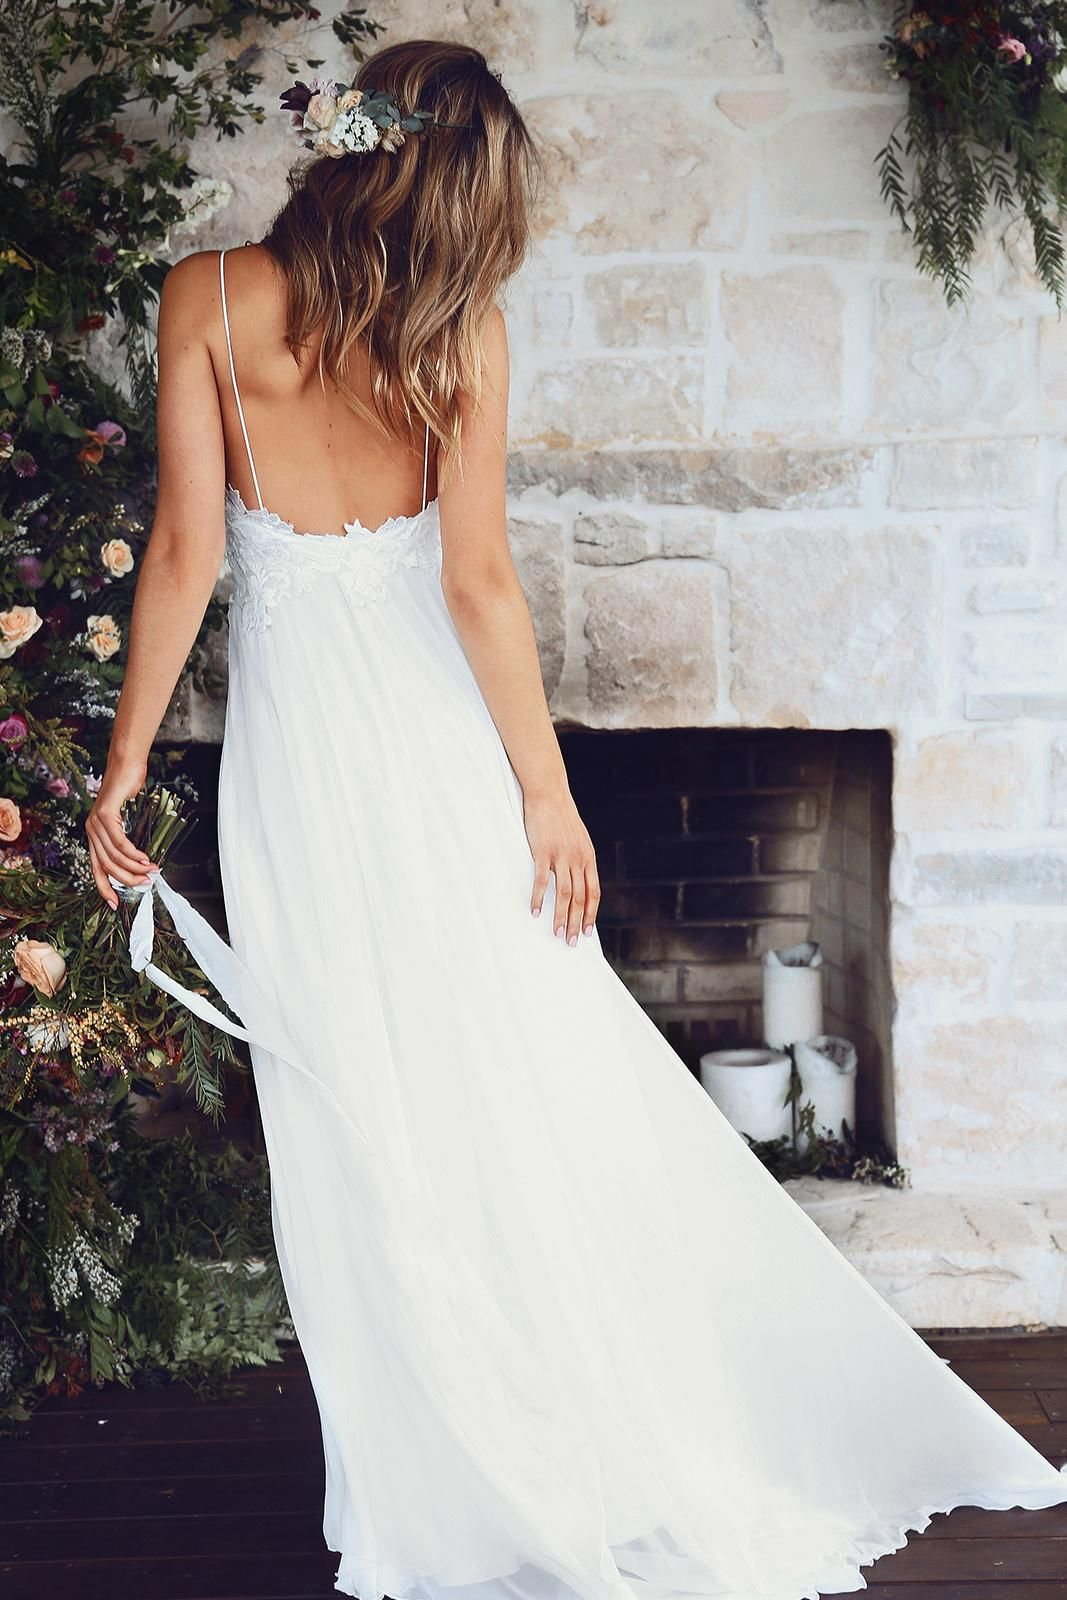 Tara romantic gowns and wedding bride